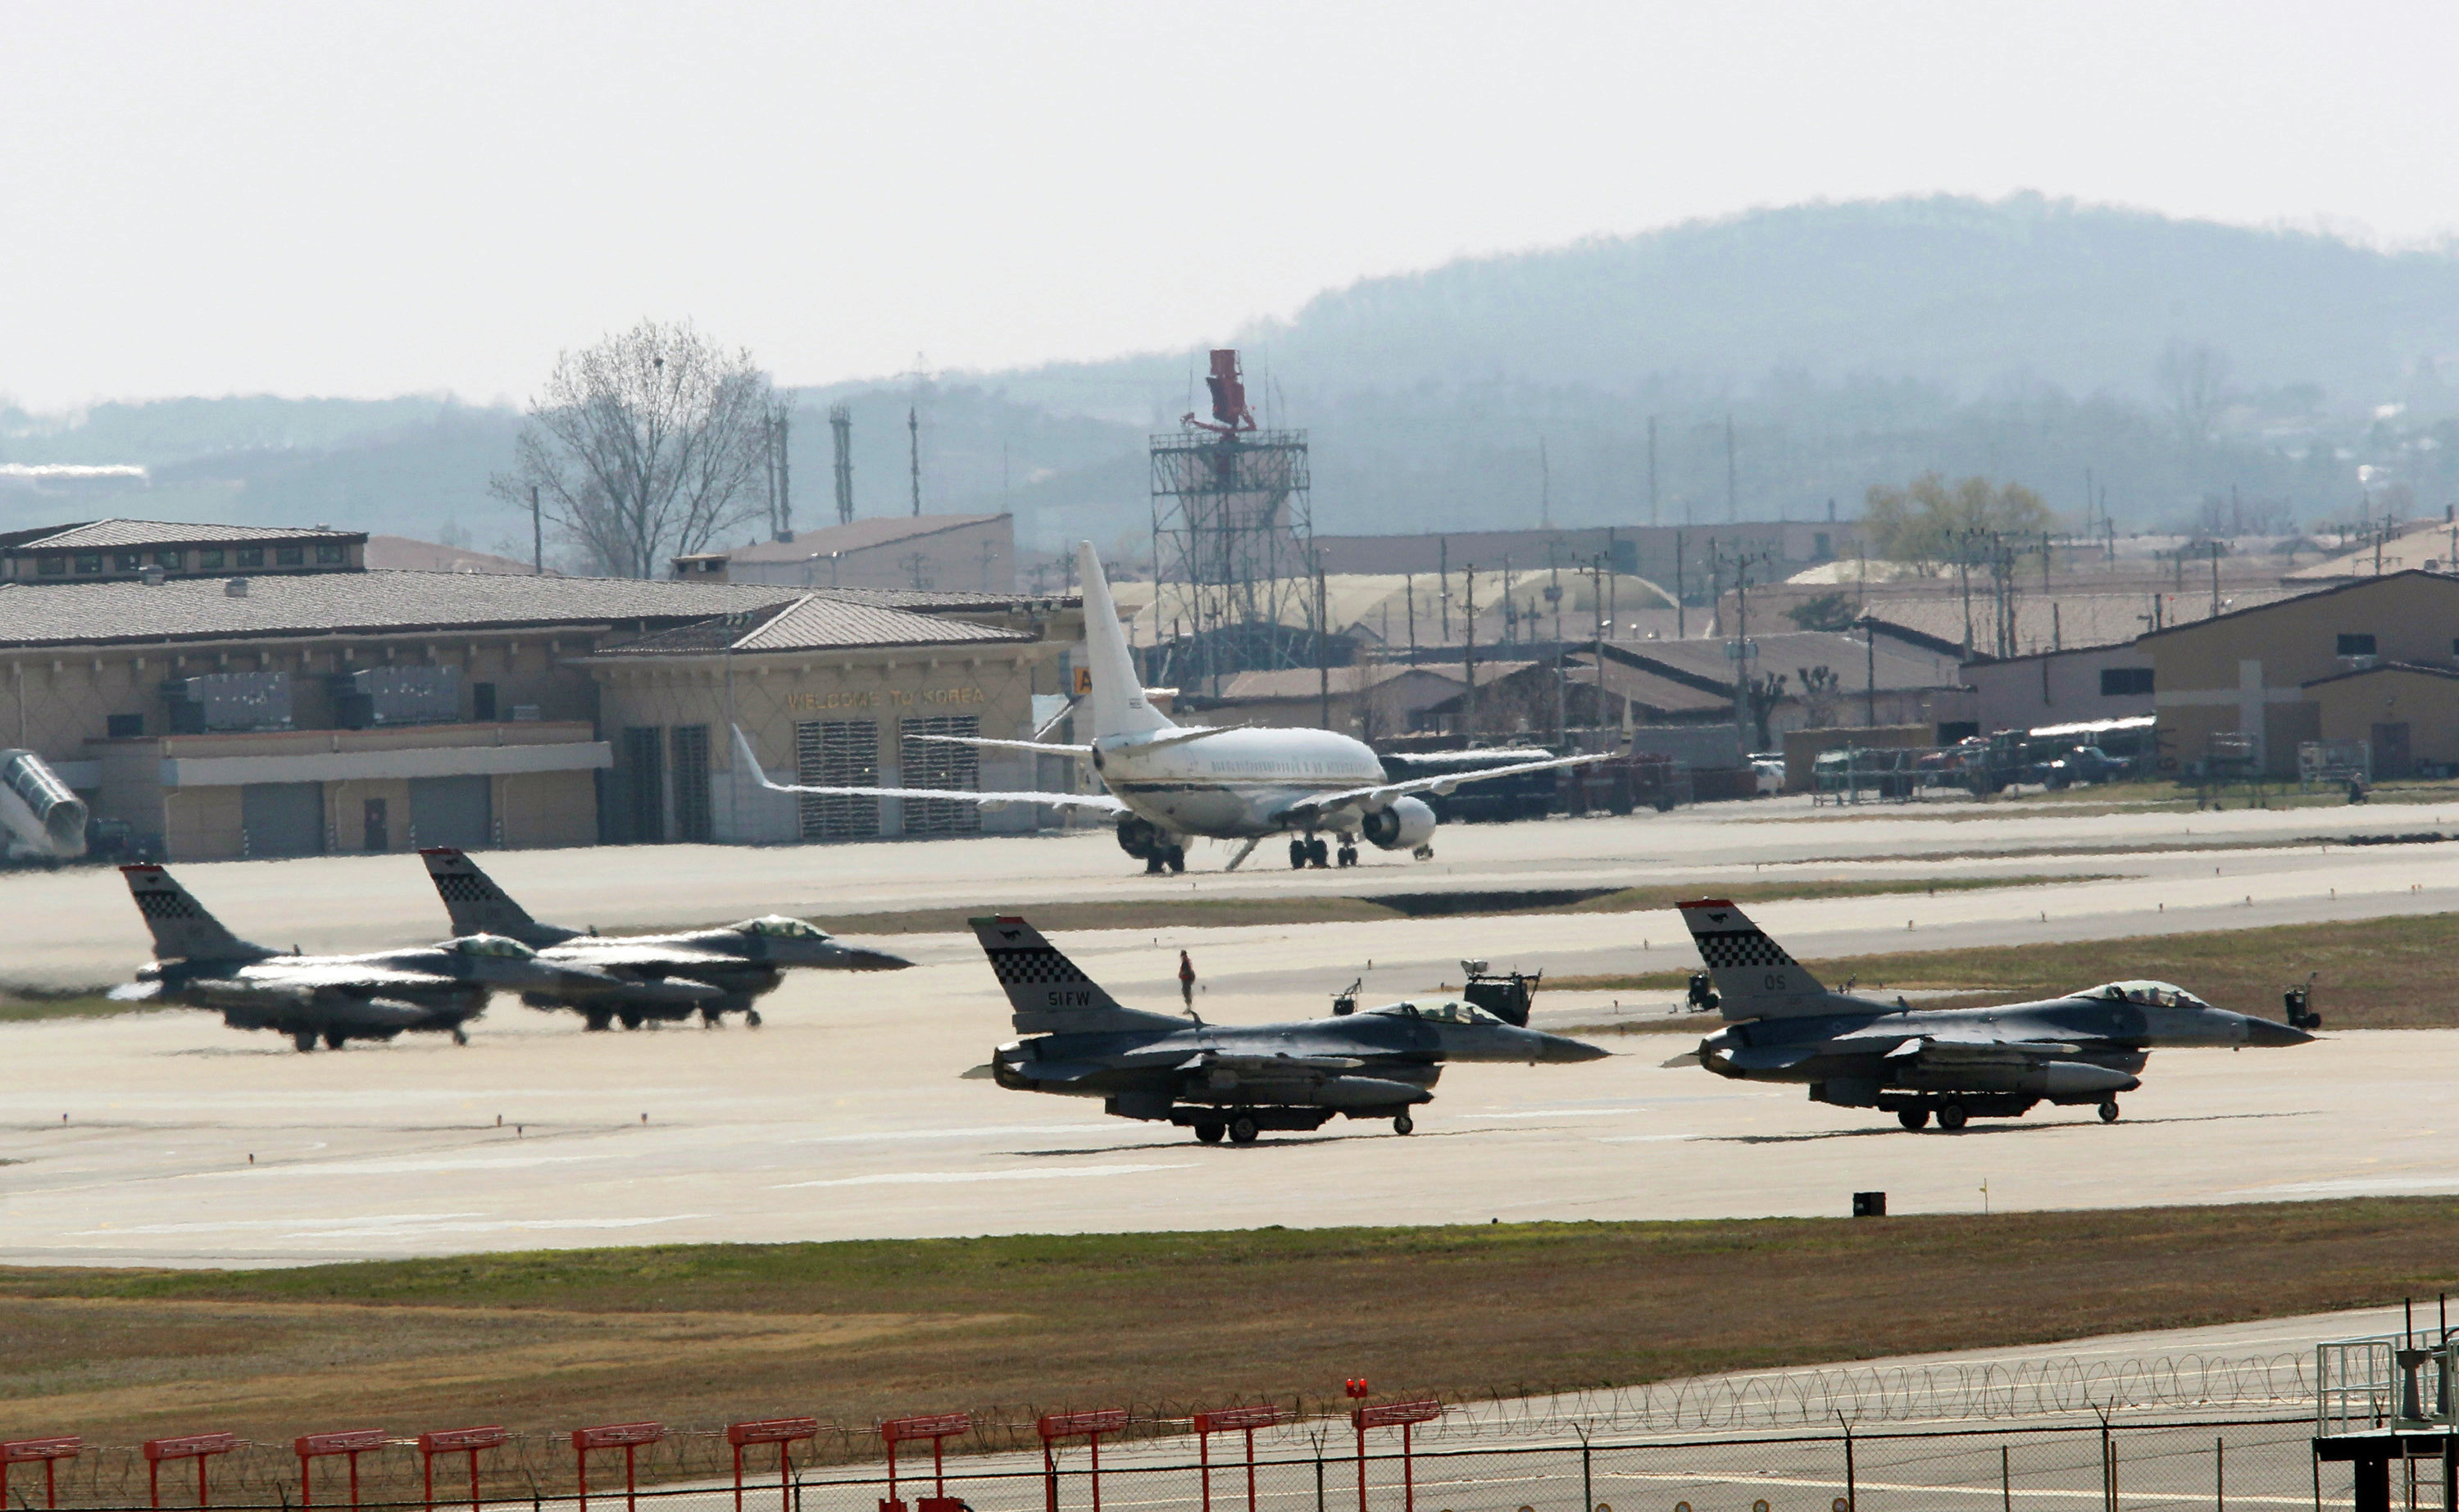 US Air Force F-16 fighter jets wait to take off from a runway during a military exercise at the Osan US Air Base in Osan, South Korea